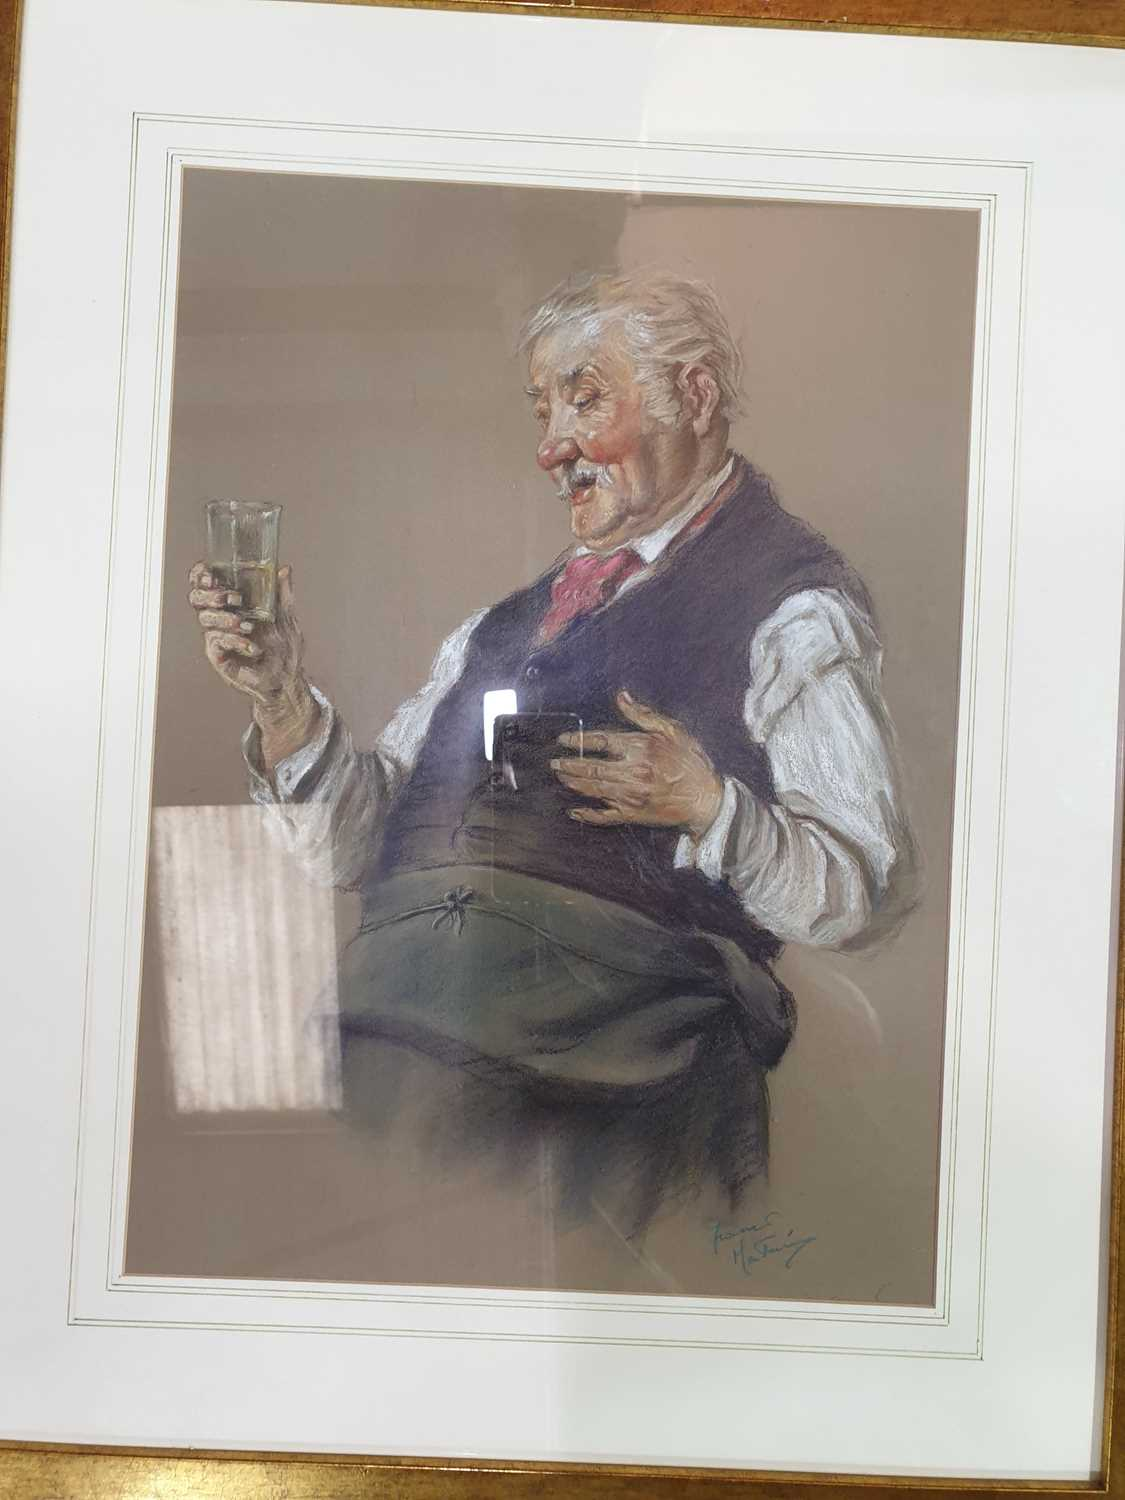 Lot 53 - Franco Matania (1922-2006) Italian/British, a pastel drawing of a barman with drink together with